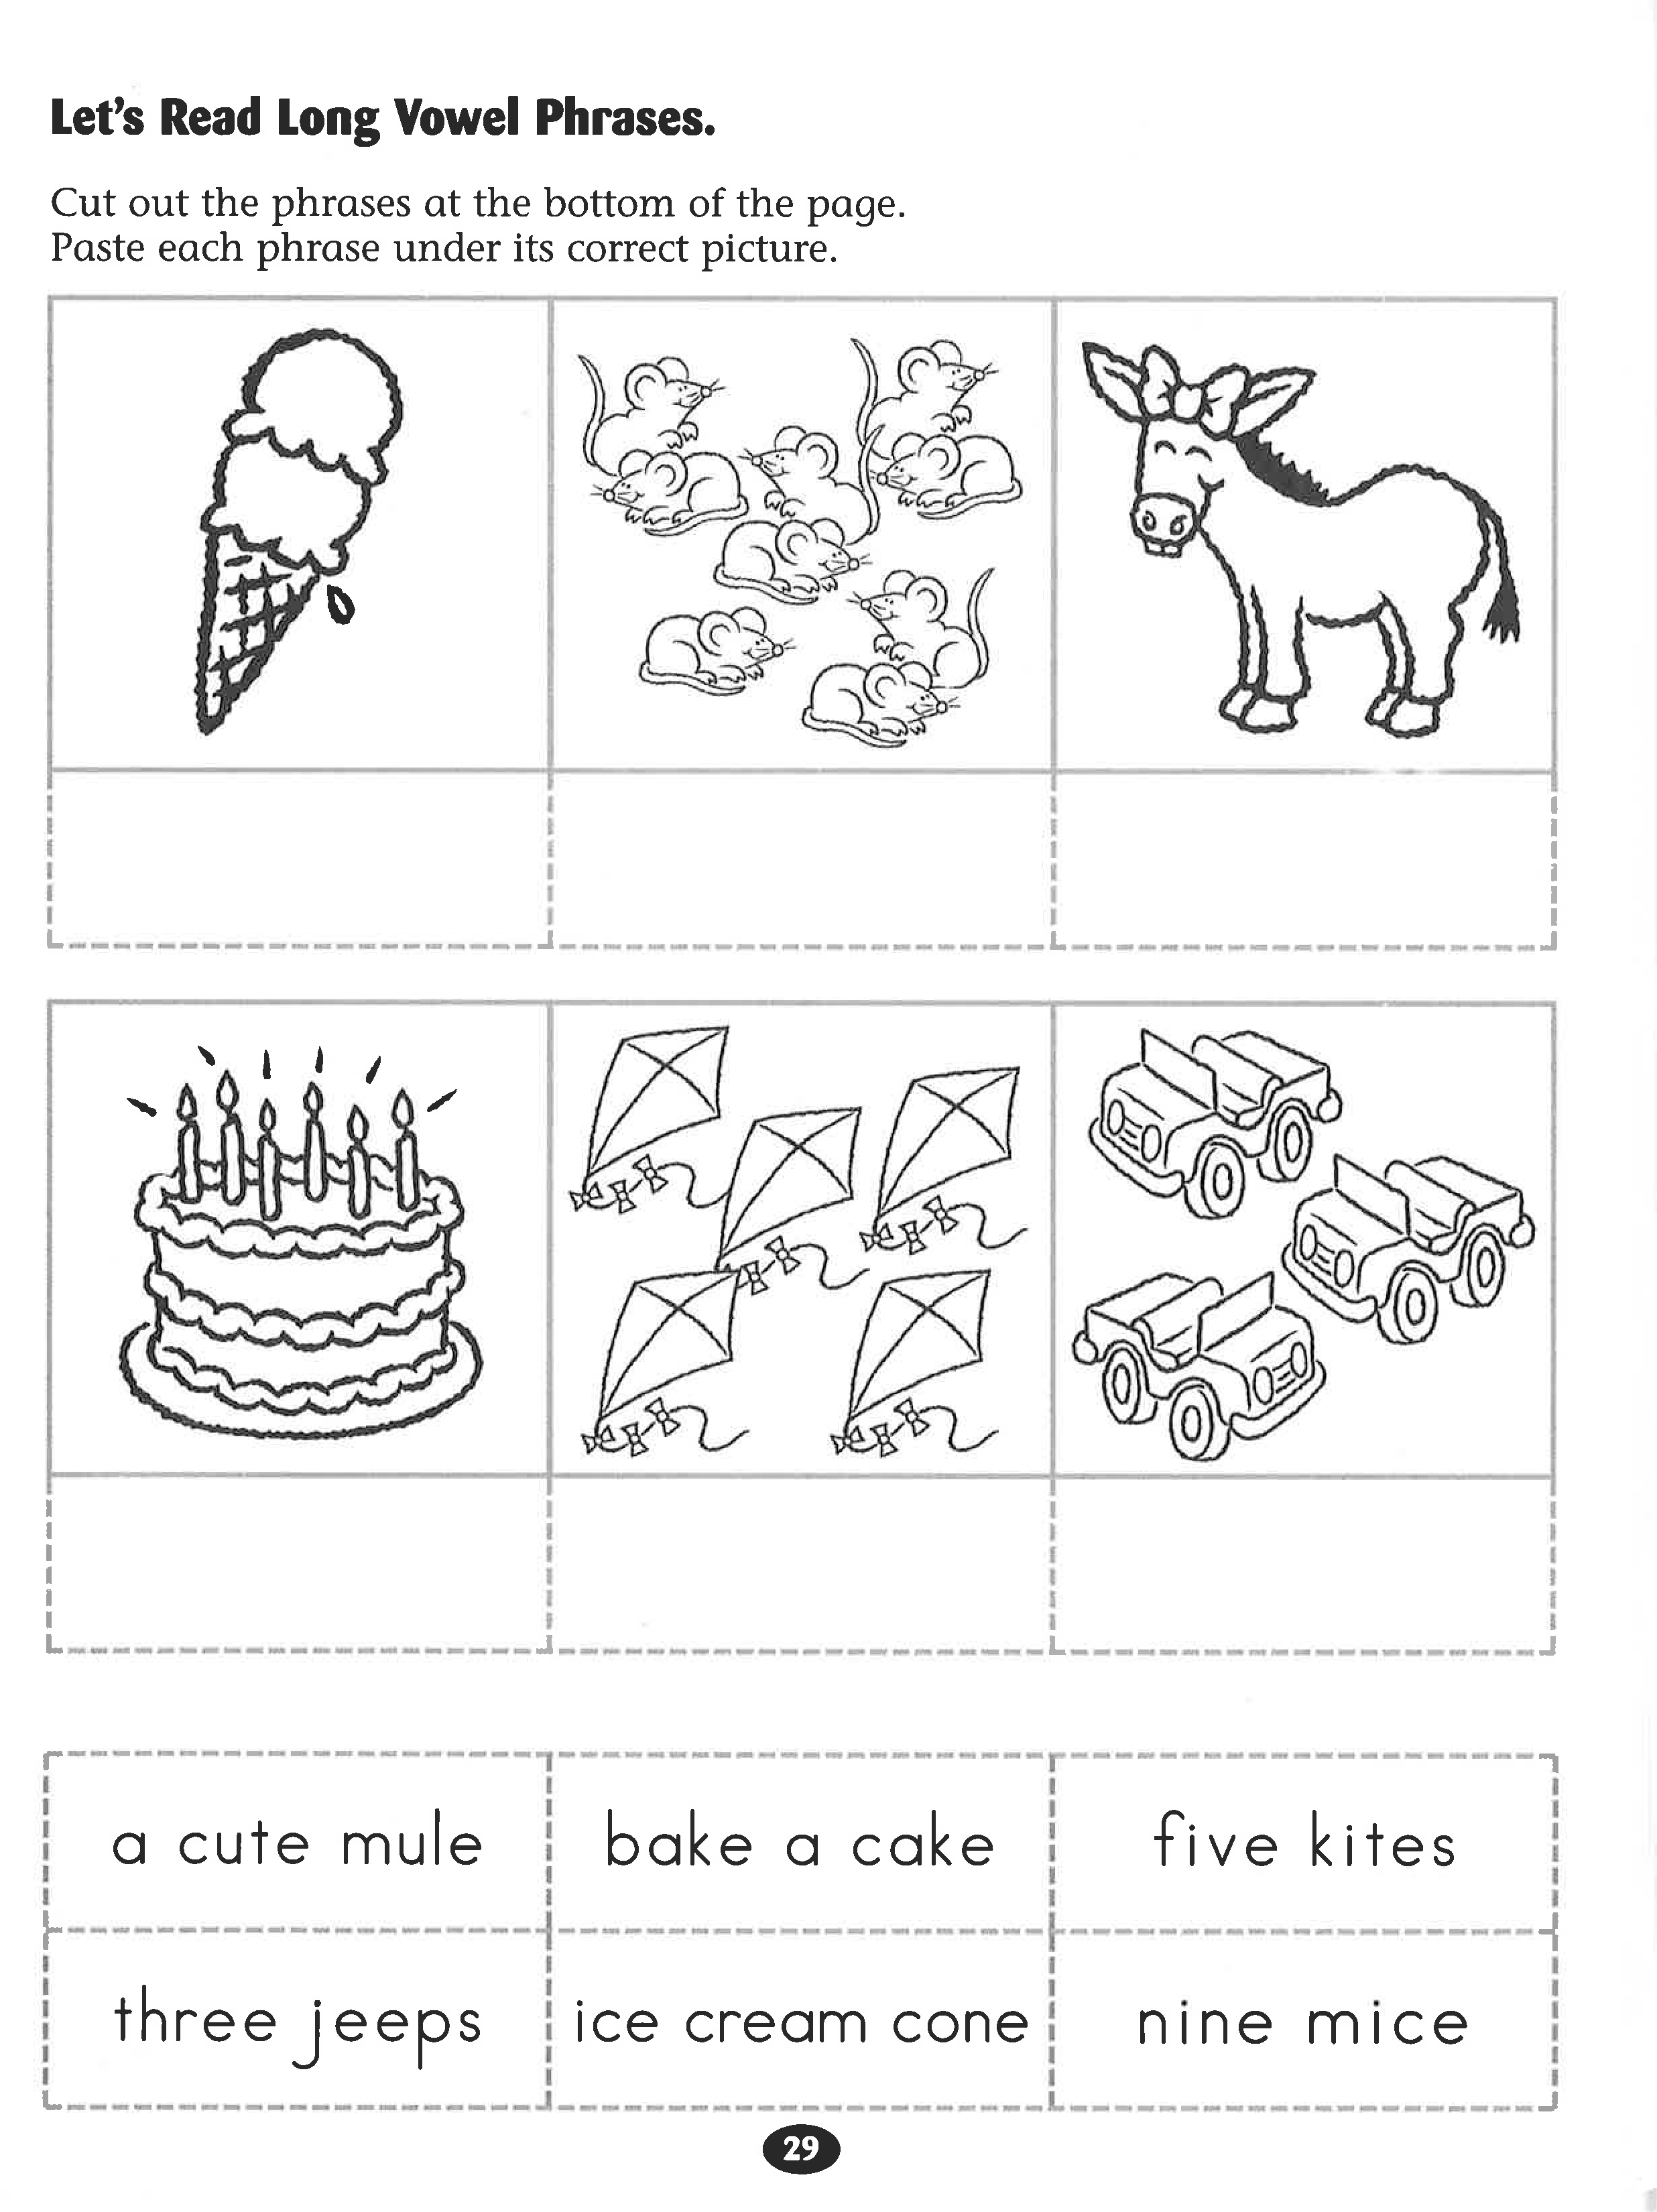 Let S Read Long Vowel Phrases Worksheet